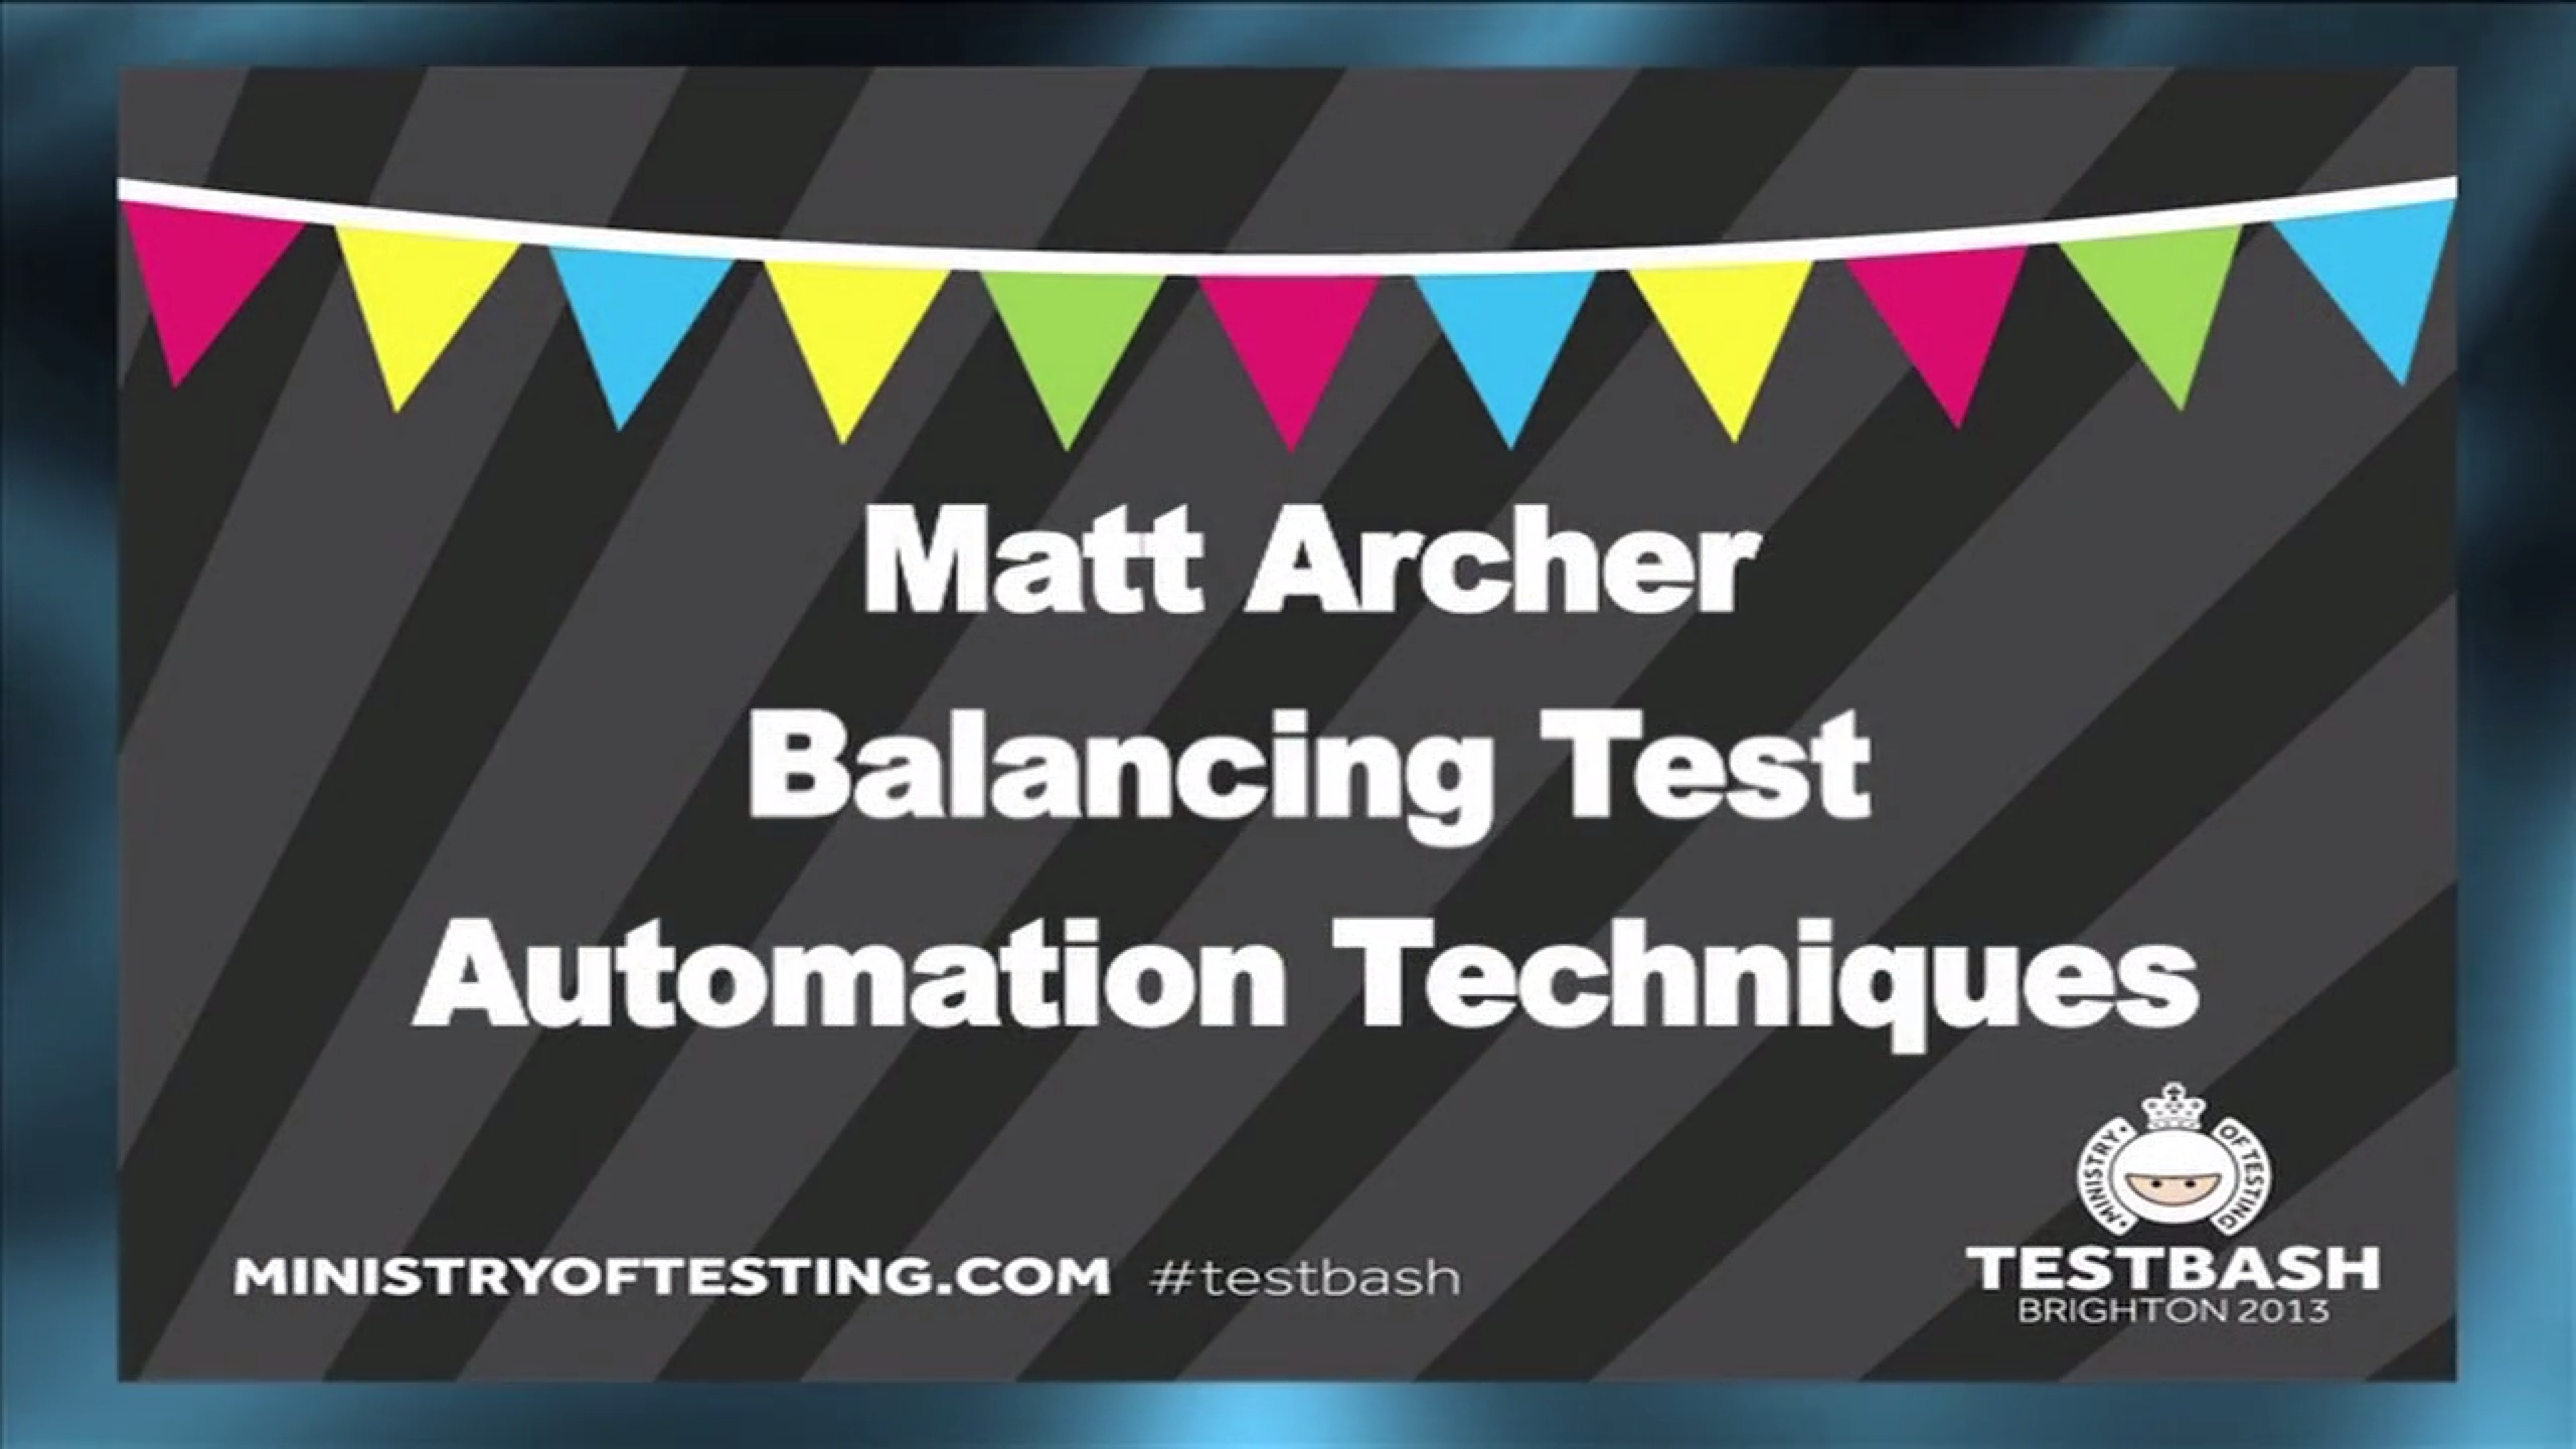 Balancing Test Automation Techniques - Matt Archer